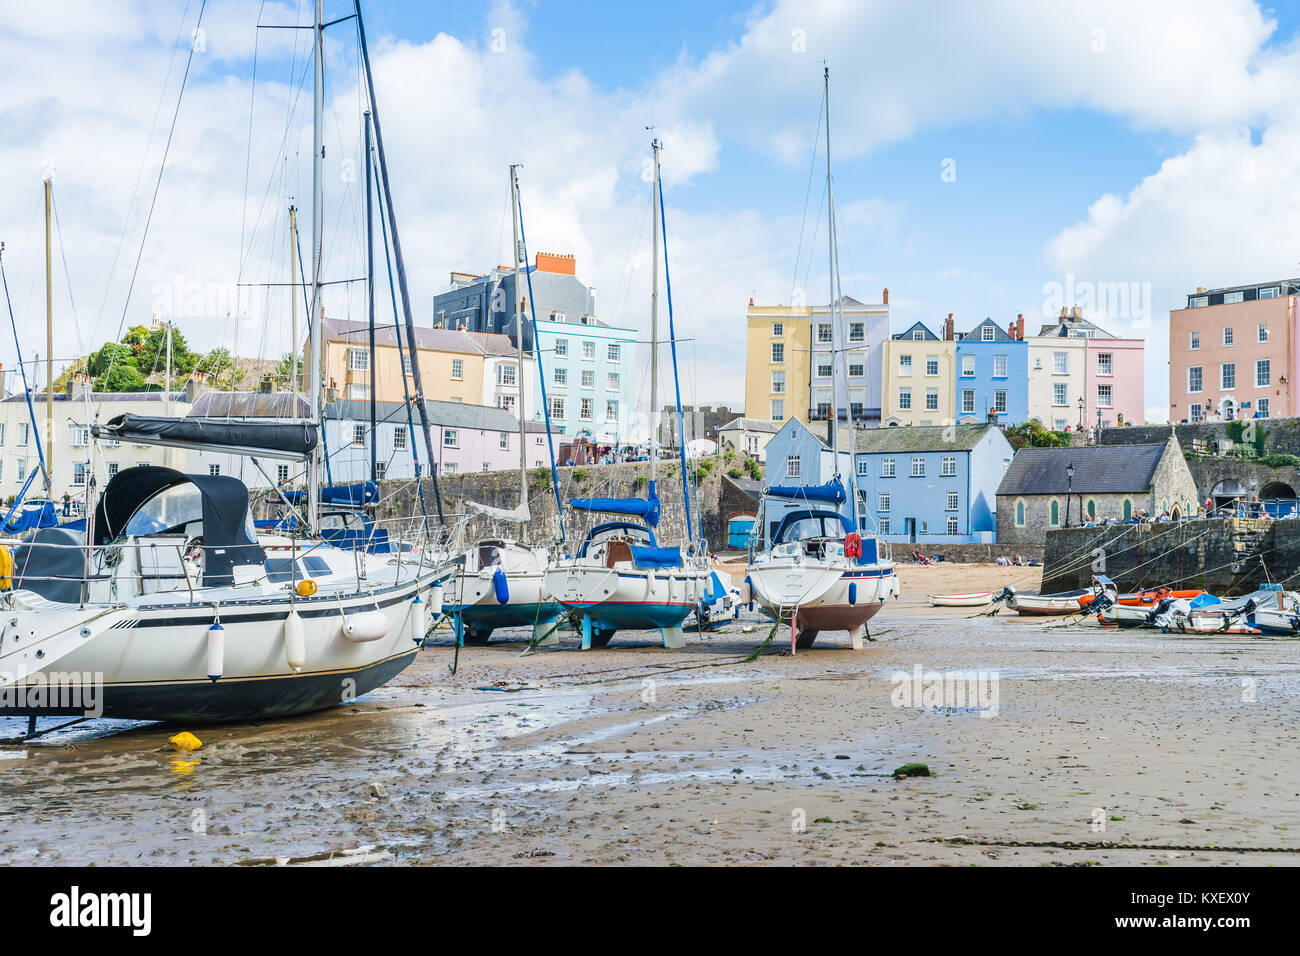 Boats in the bay at low tide in Tenby bay, Wales - Stock Image